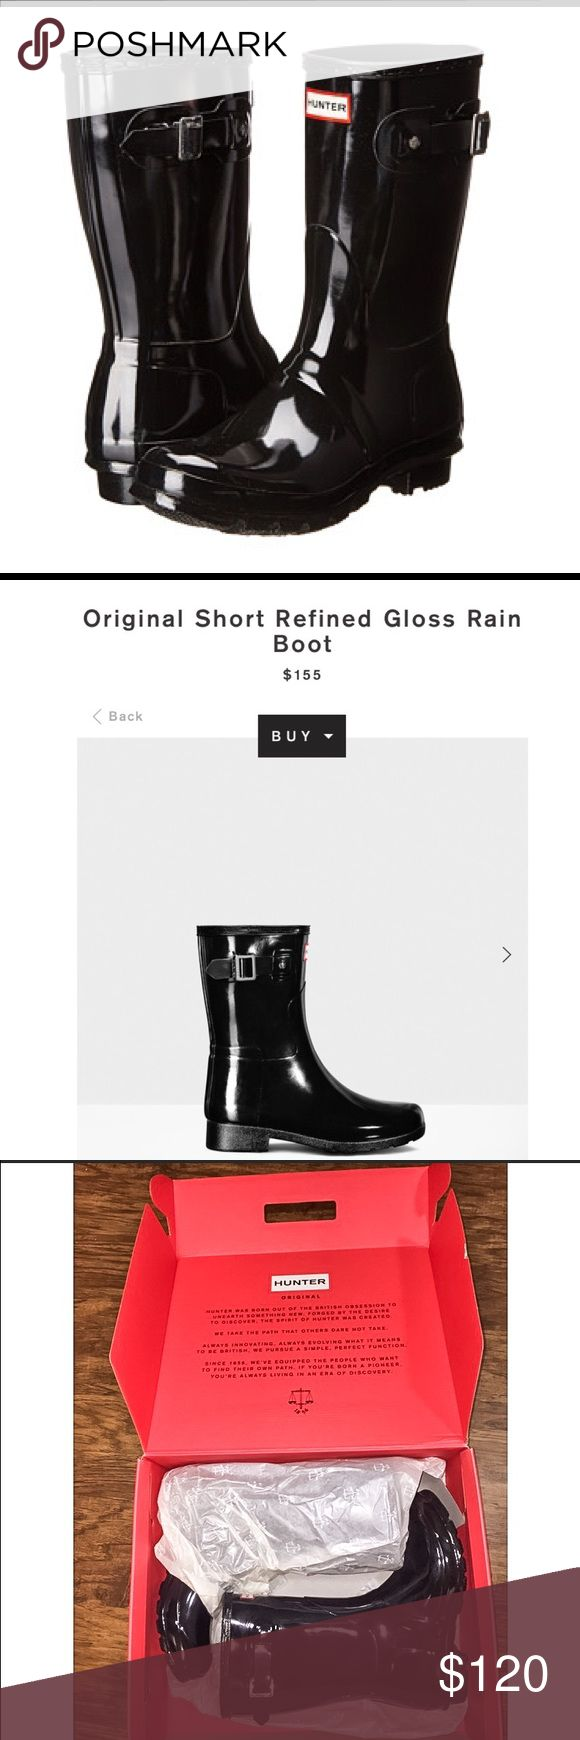 Hunter Boots. Original short Hunter Original Short Gloss Wellies Gloss finish New refined silhouette Slim leg fit Handcrafted Waterproof Thinner rubber Molded footbed. Never worn. In original box. Hunter Boots Shoes Winter & Rain Boots